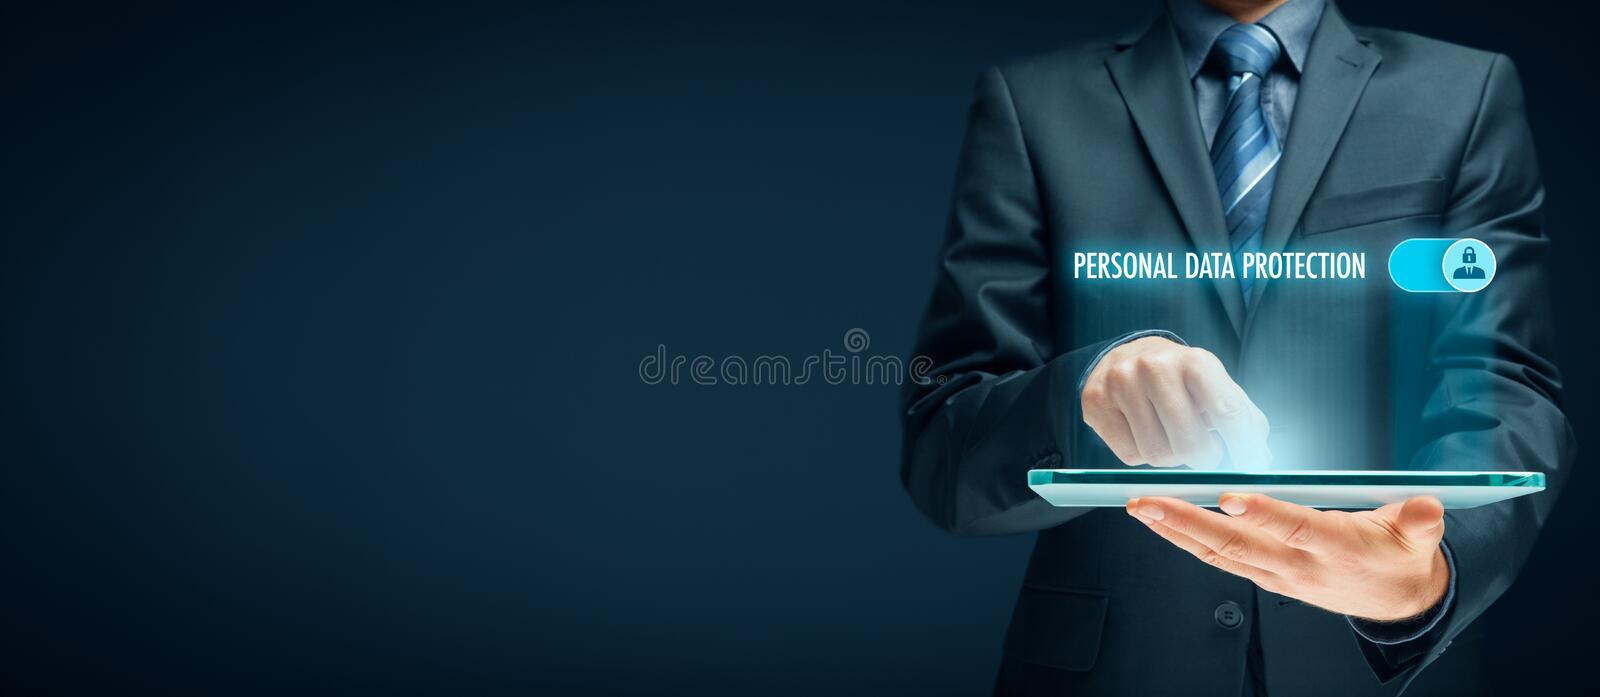 Personal data protection concept stock images